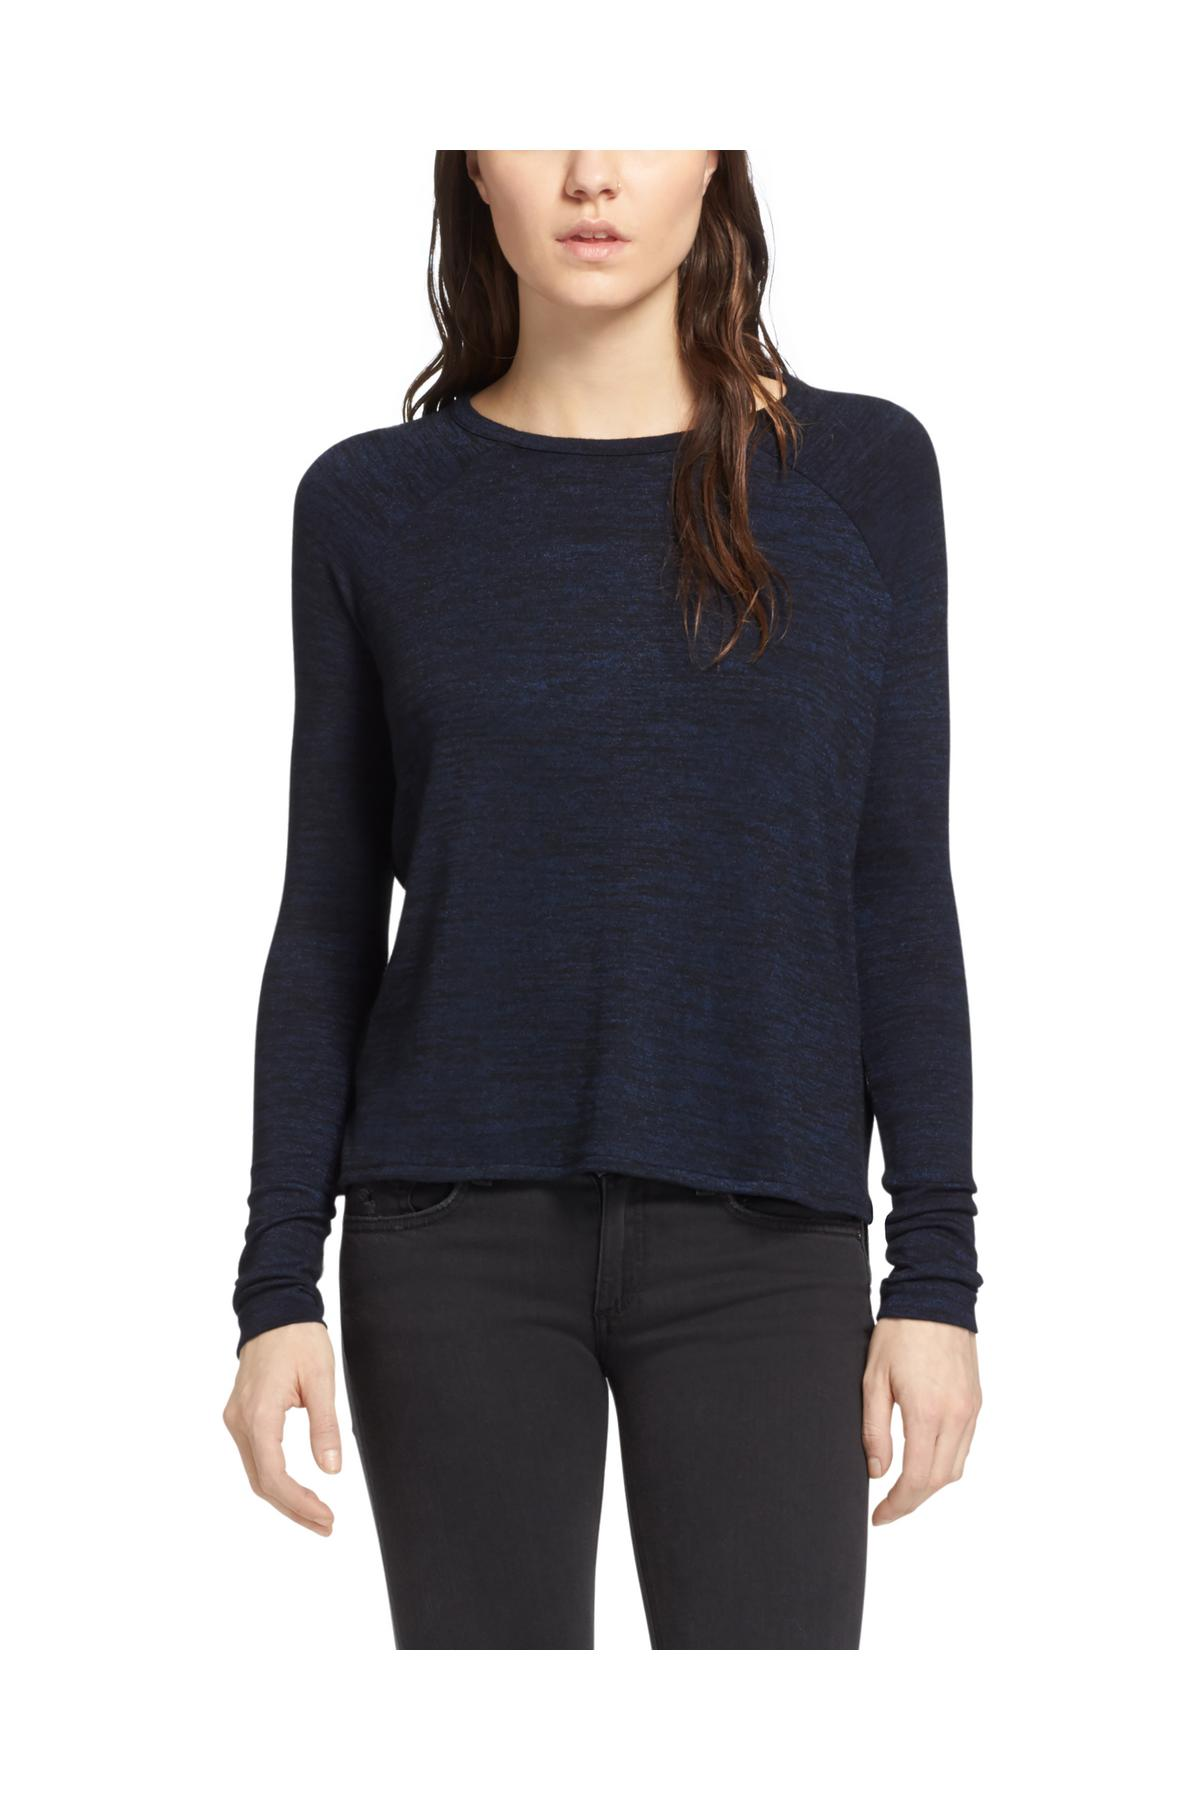 RAG & BONE CAMDEN LONG SLEEVE TEE